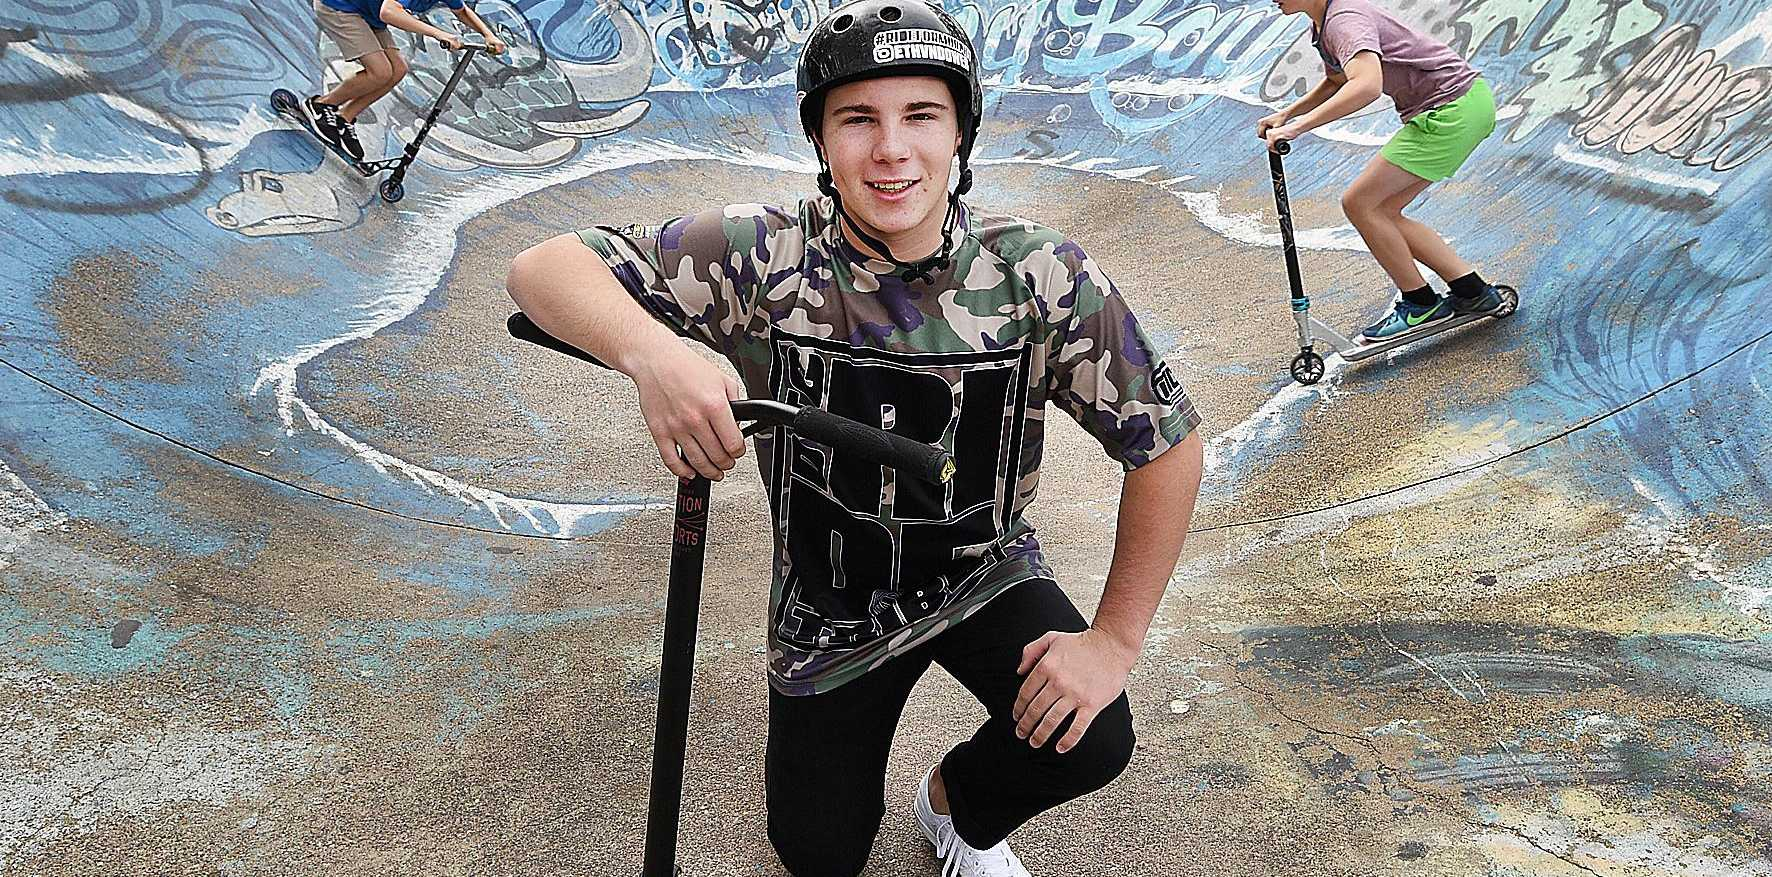 15 yr old Ethan Dower is looking forward to the new skate park on the Esplanade.